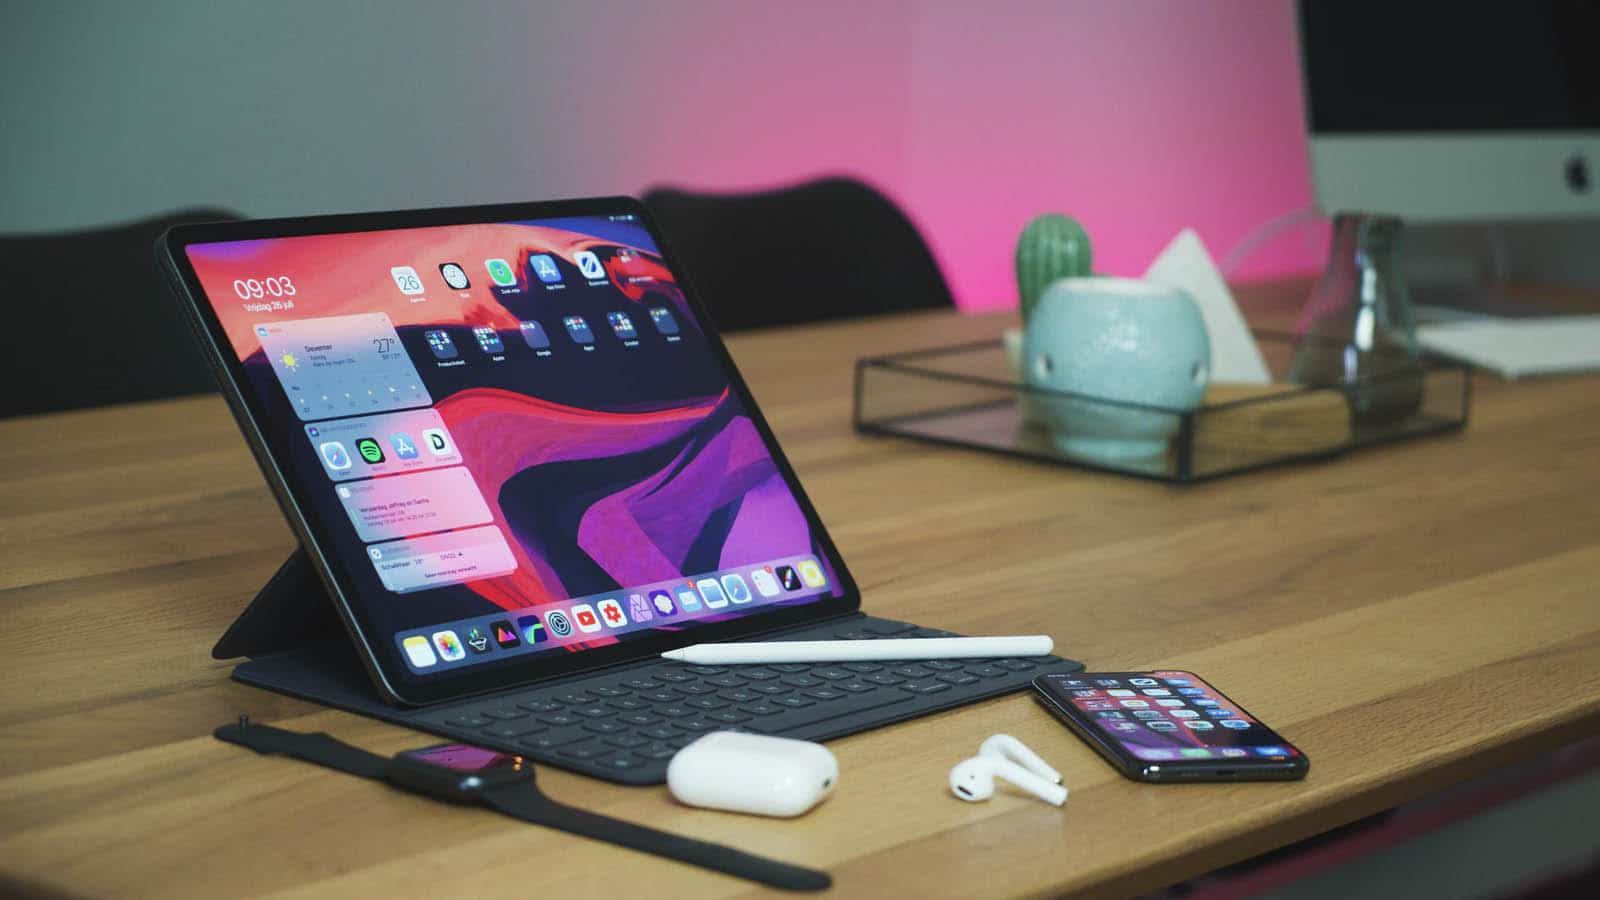 ipad pro on table as a monitor